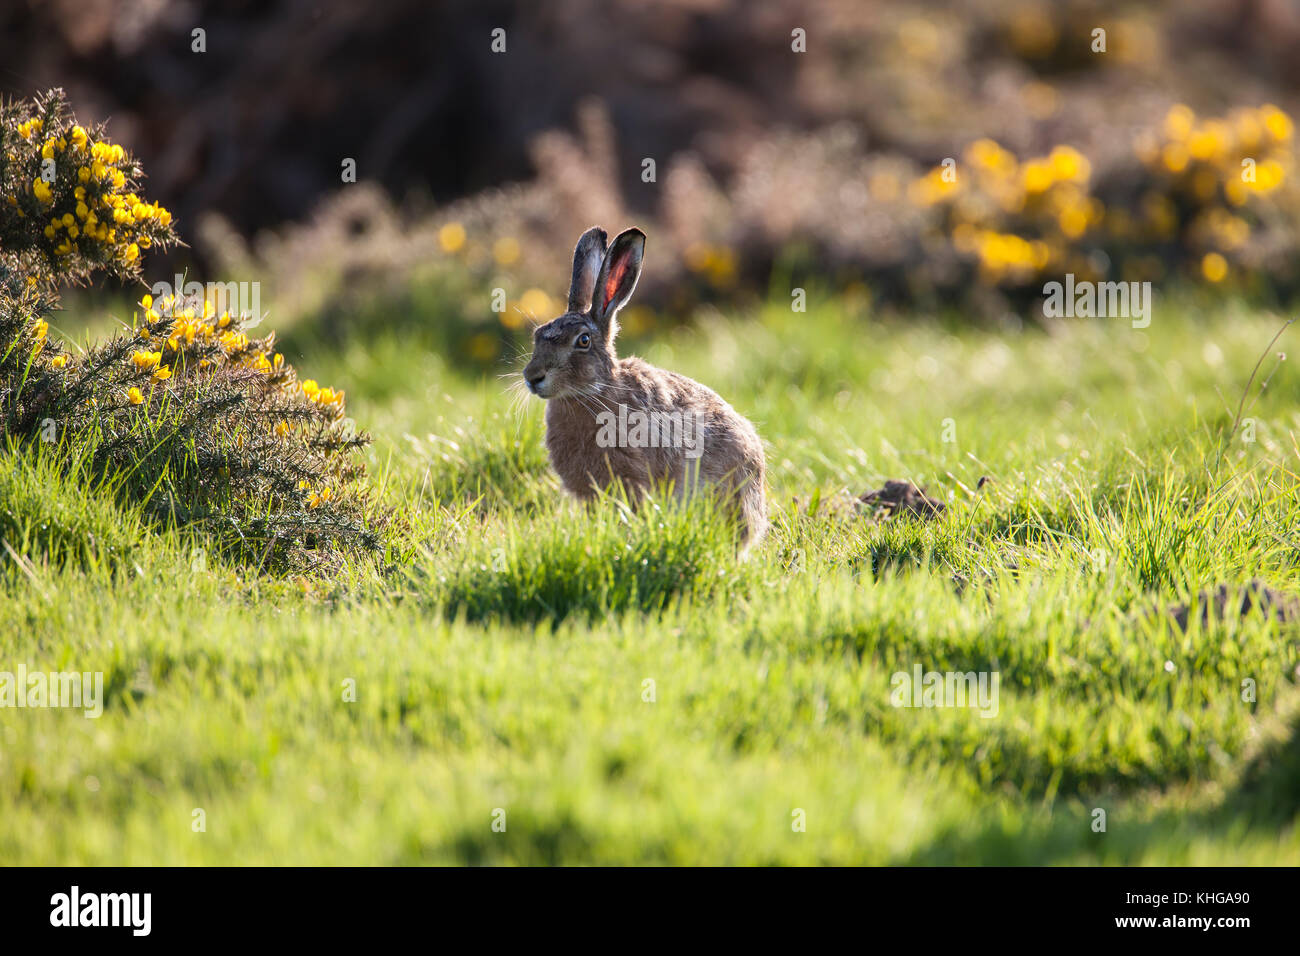 Brown Hare Lepus europaeus in thick grass and gorse bushes on sunny evening - Stock Image